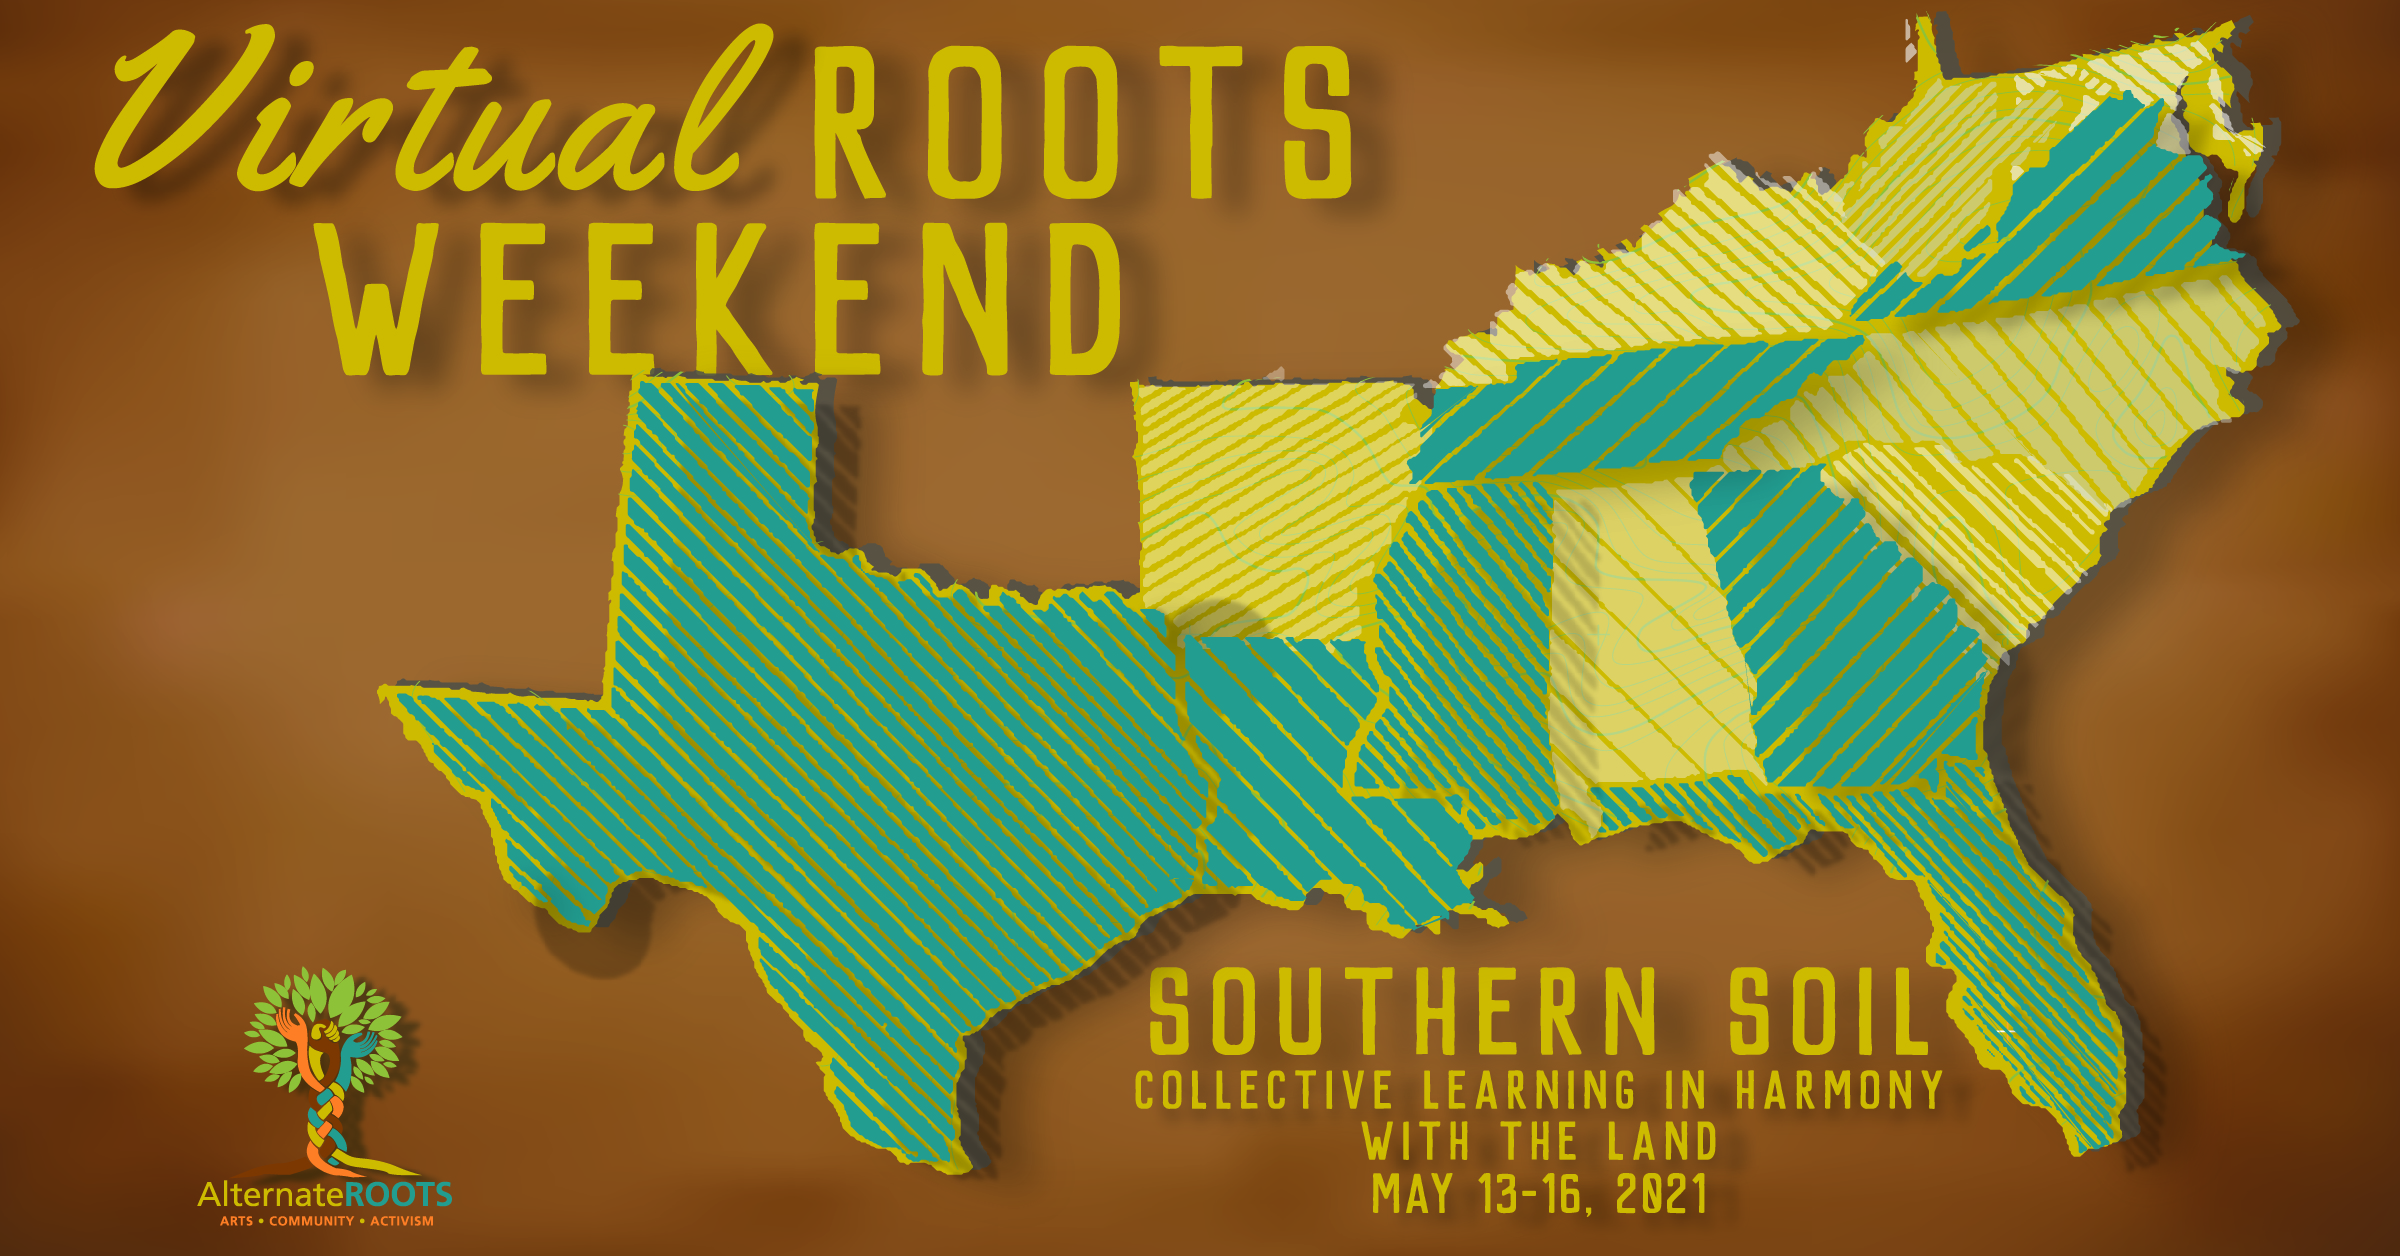 Register for Virtual ROOTS Weekend 2021